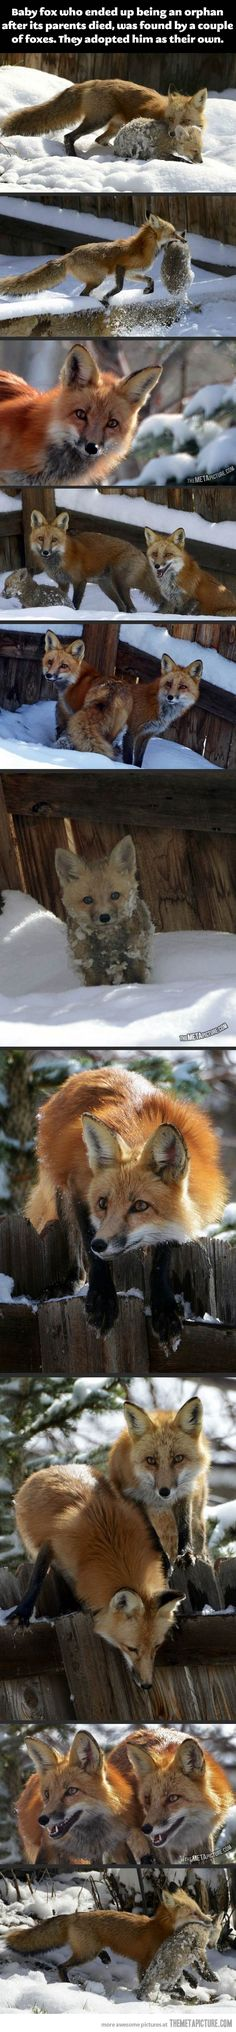 "All i can think of is my cousin when she finds scarfs, sunglasses, etc. left by her friends and goes ""this is mine now."" The foxes are adorable too."